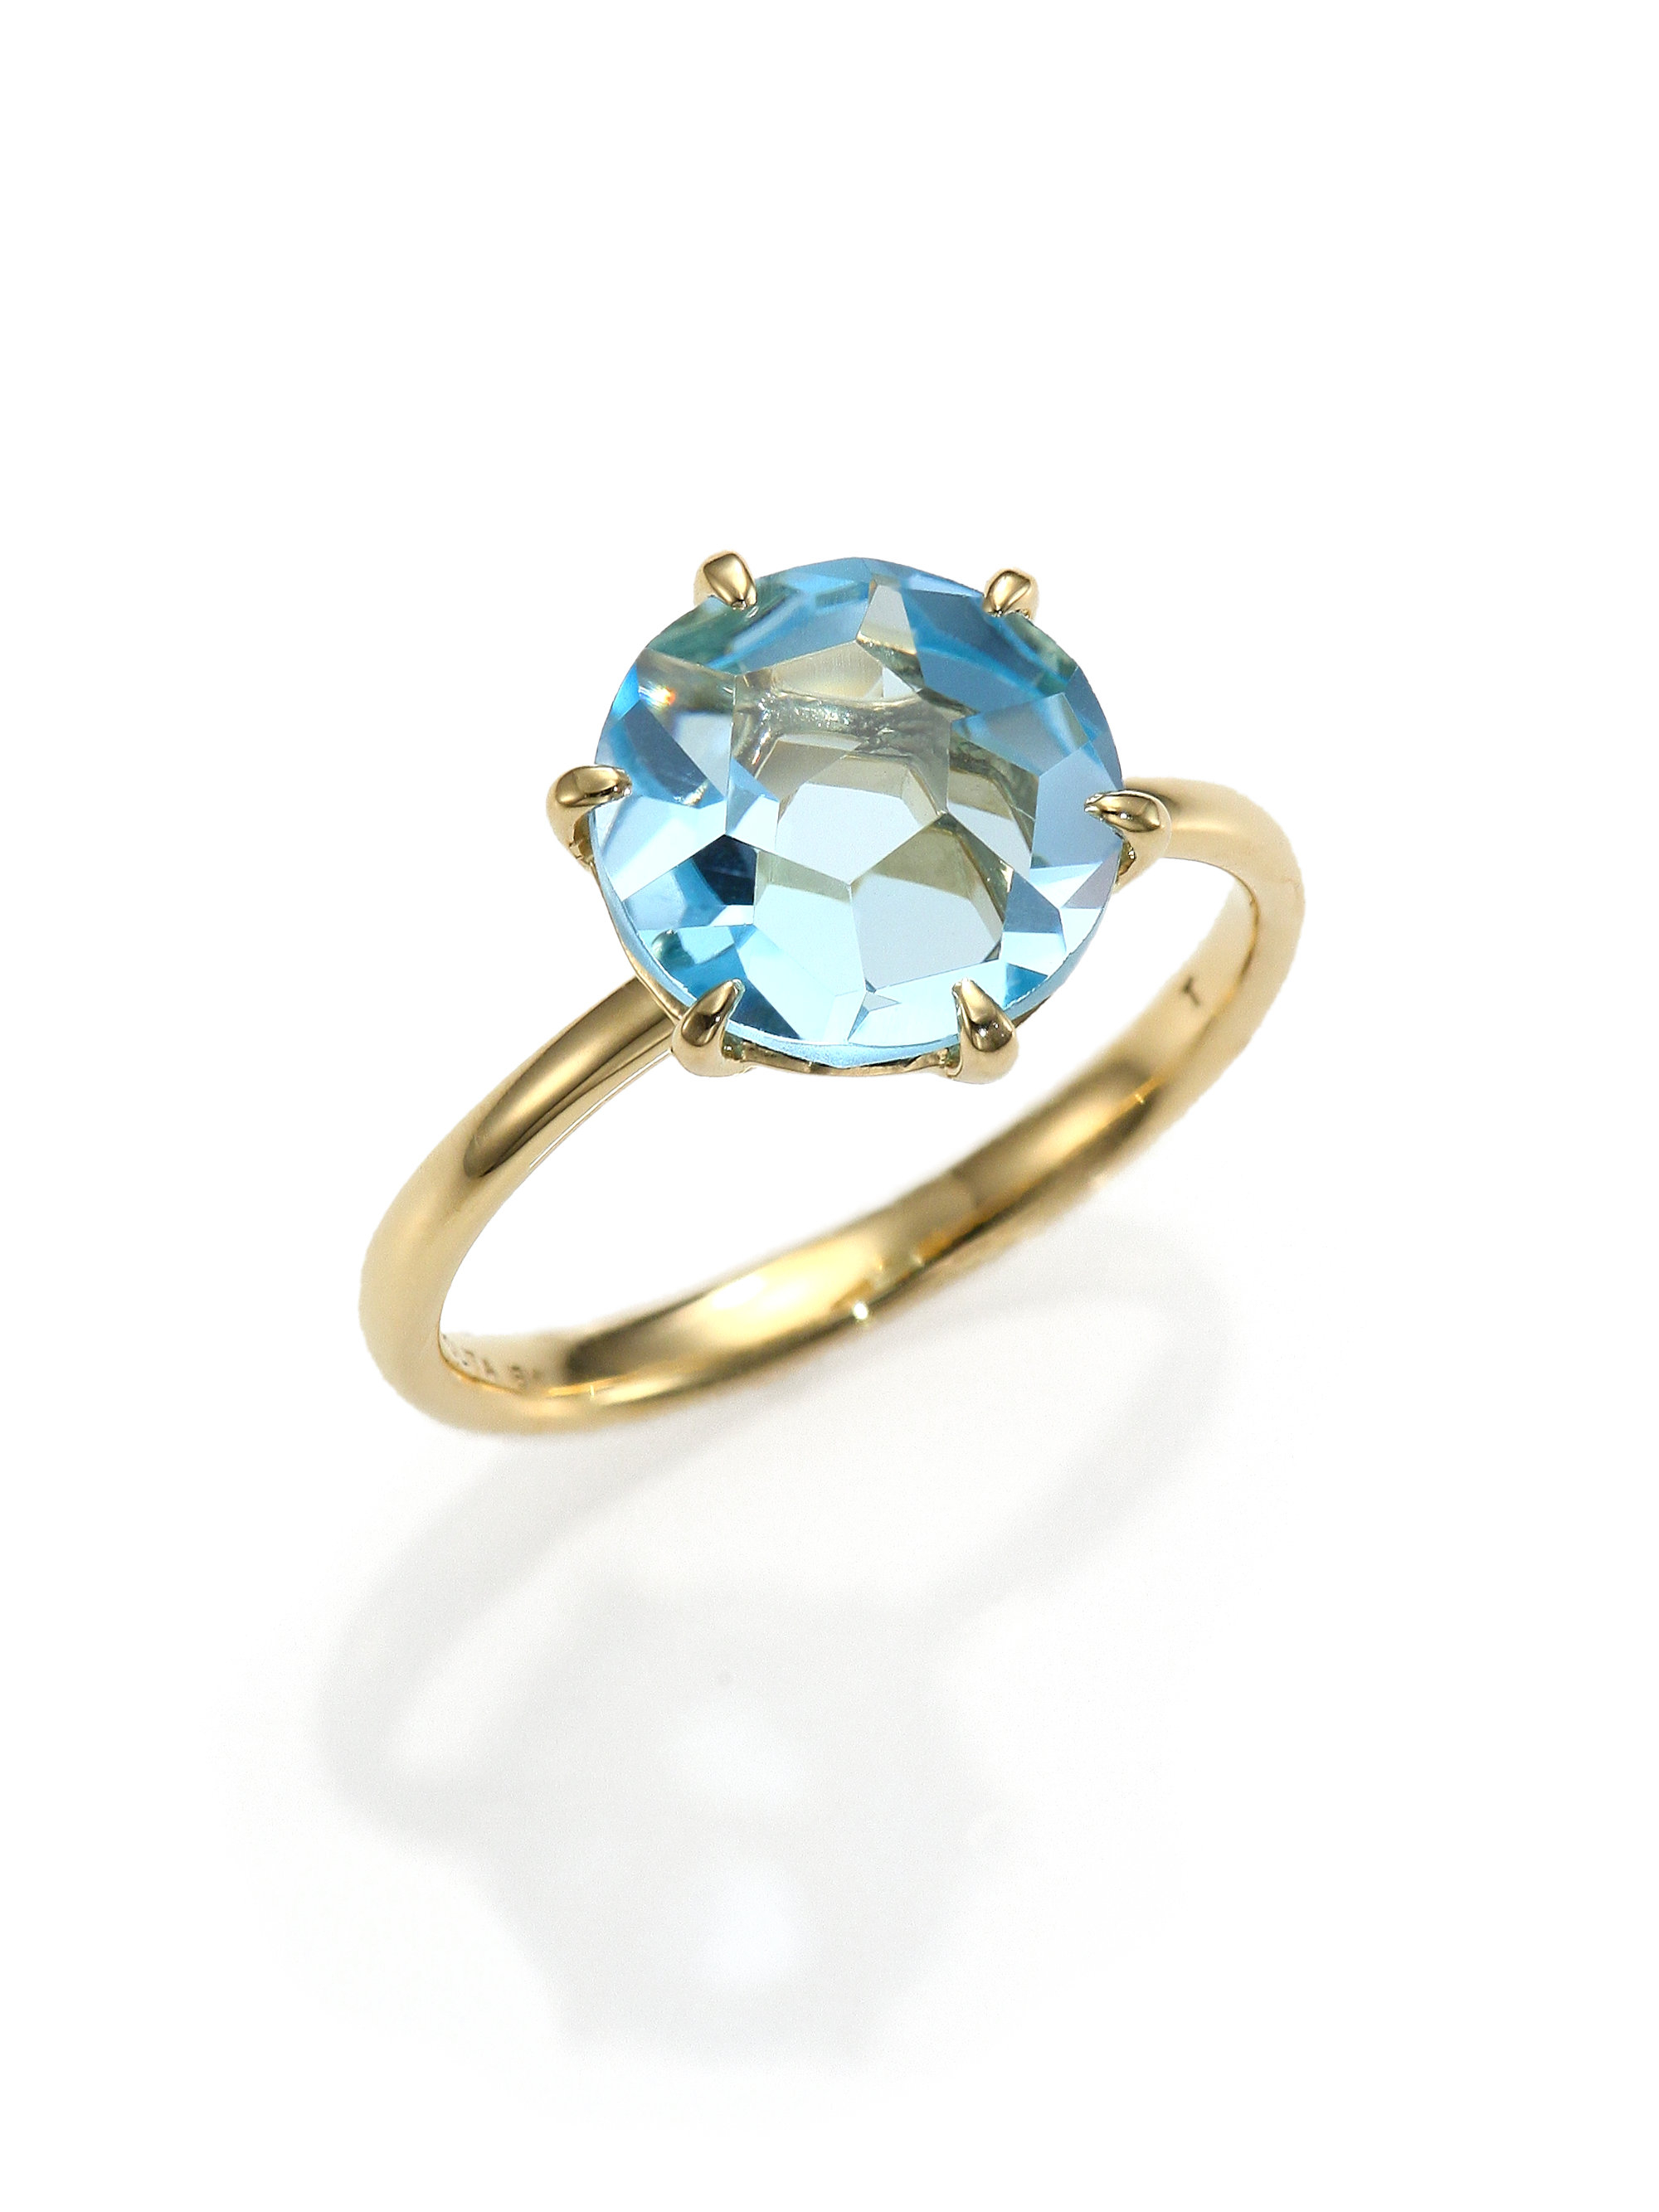 Ippolita 18k Gold Rock Candy Lollipop Ring in Blue Topaz with DIamonds